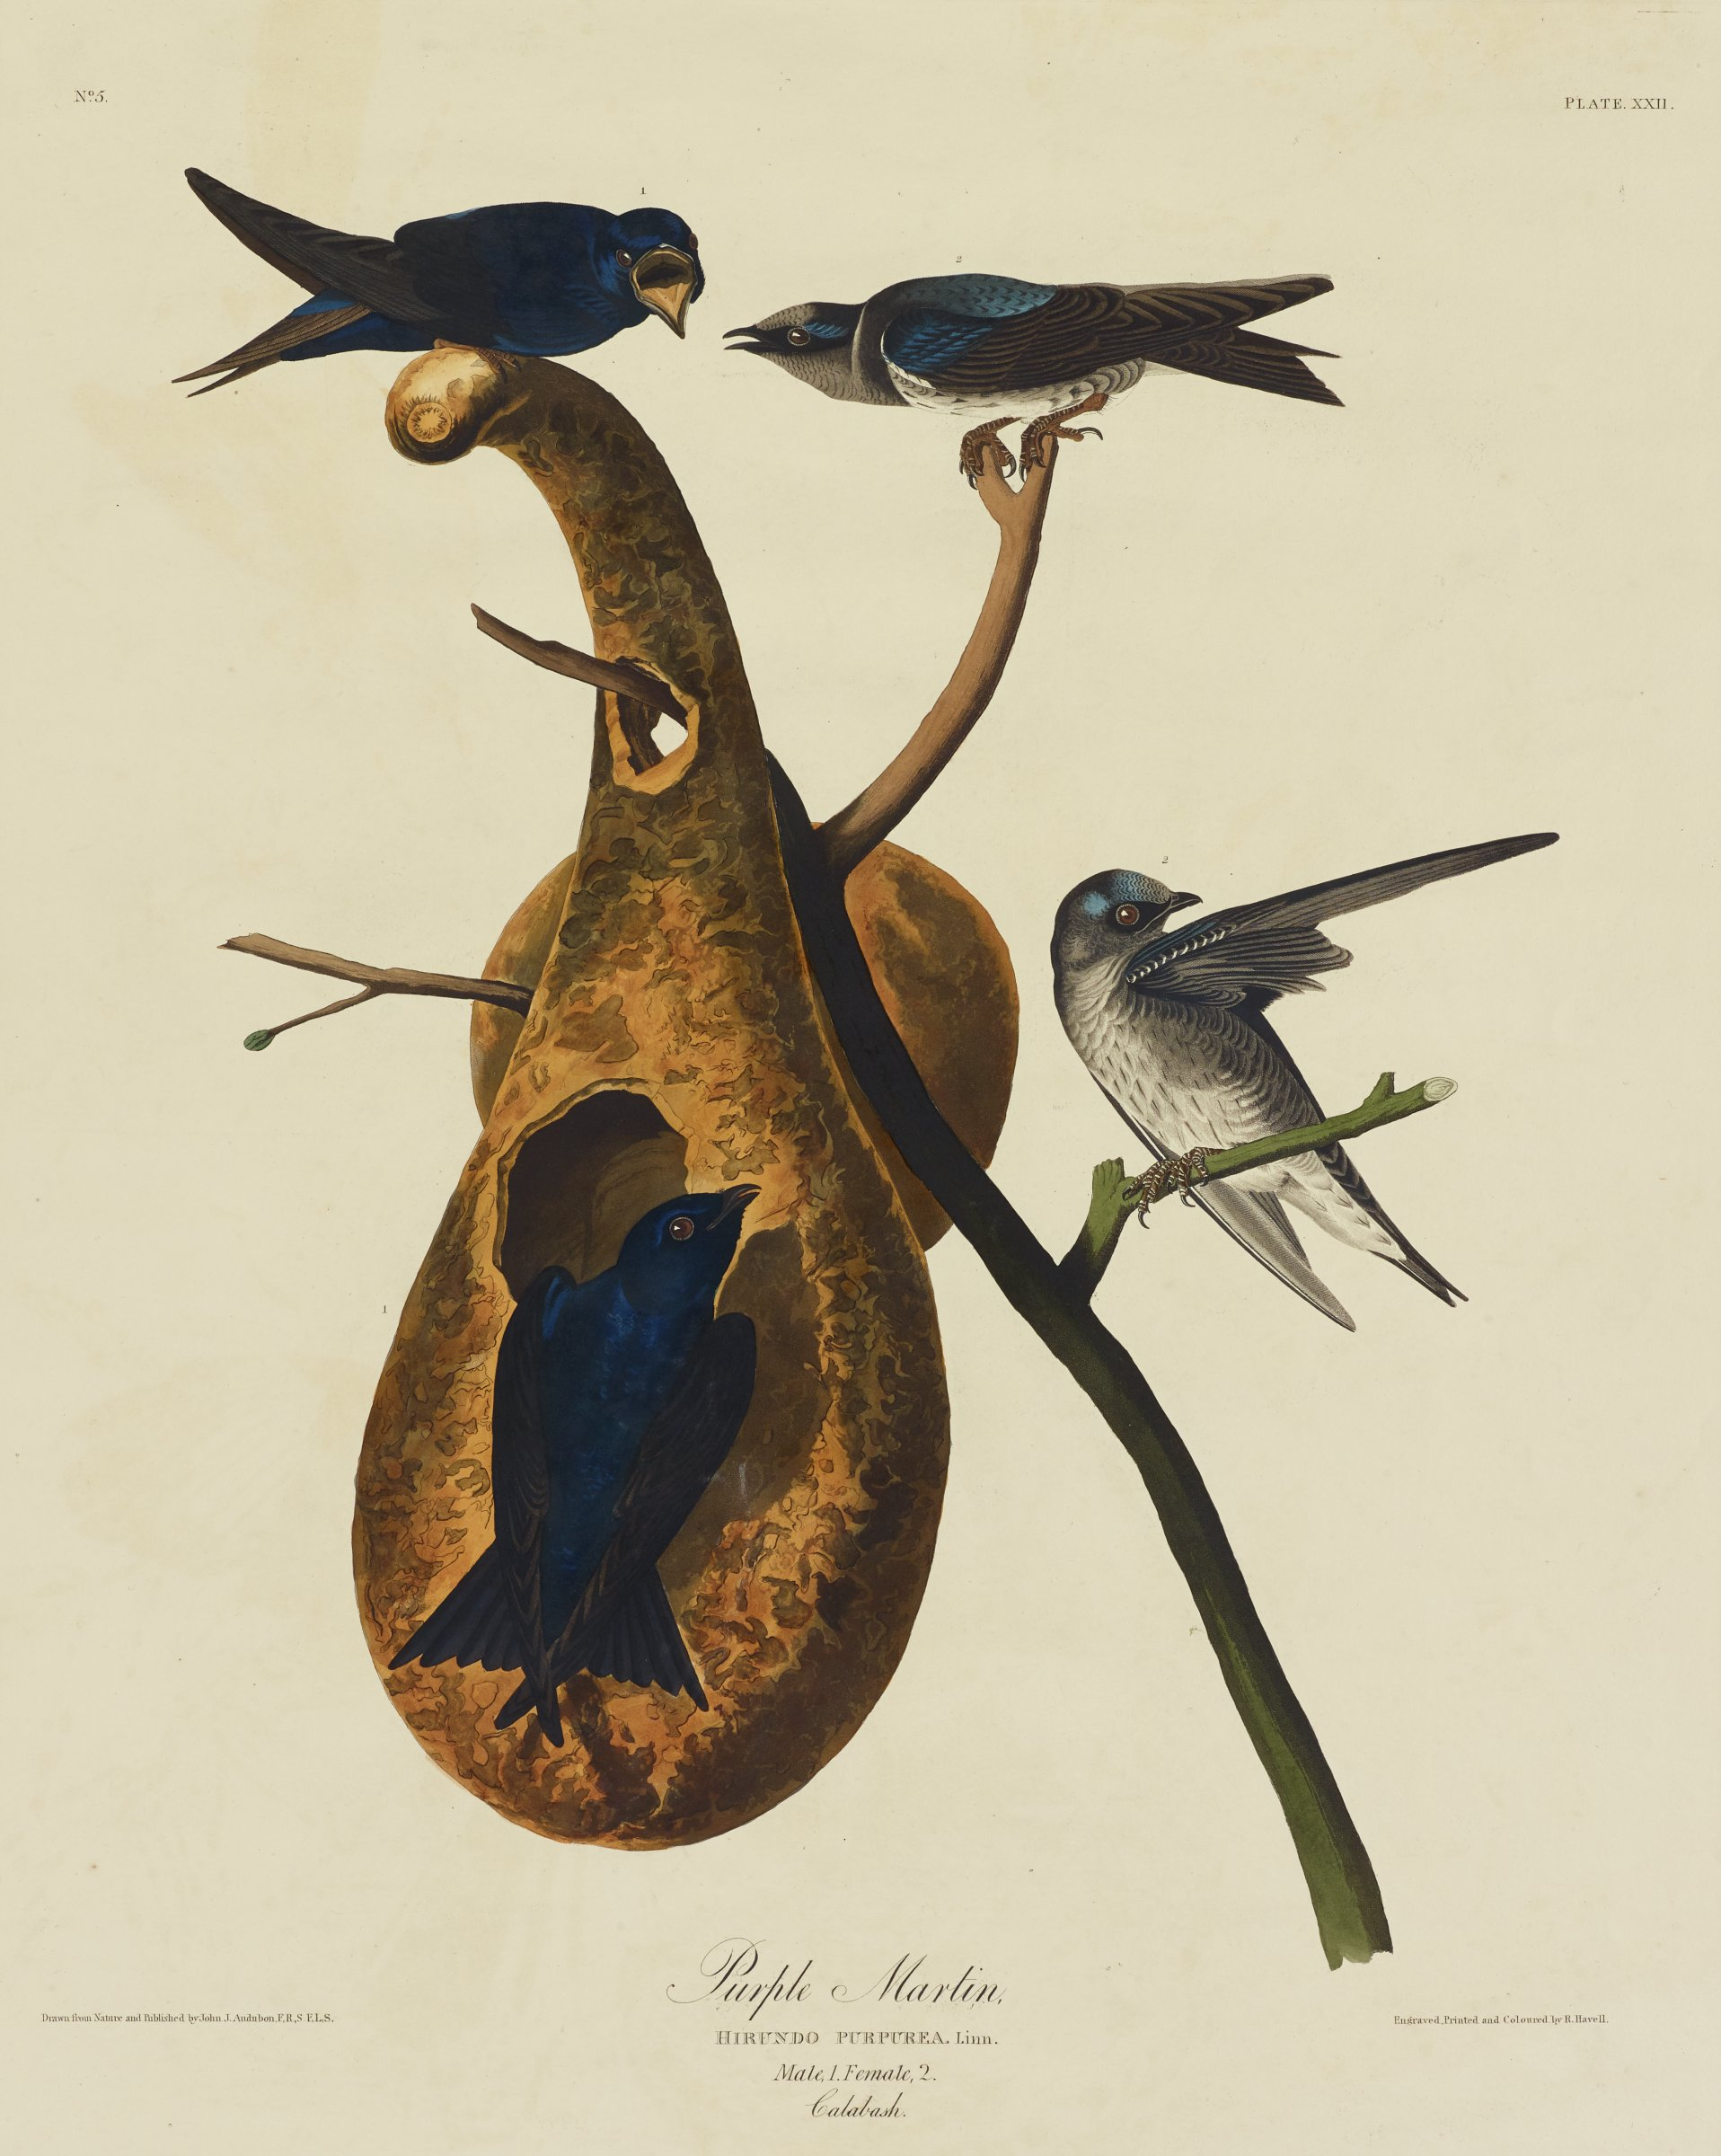 Two black birds on the left stand on a hollow gourd that hangs from a tree branch. Two birds on the right, characterized by gray, blue, and white feathers with a spotted chest, stand on the branches of the tree.